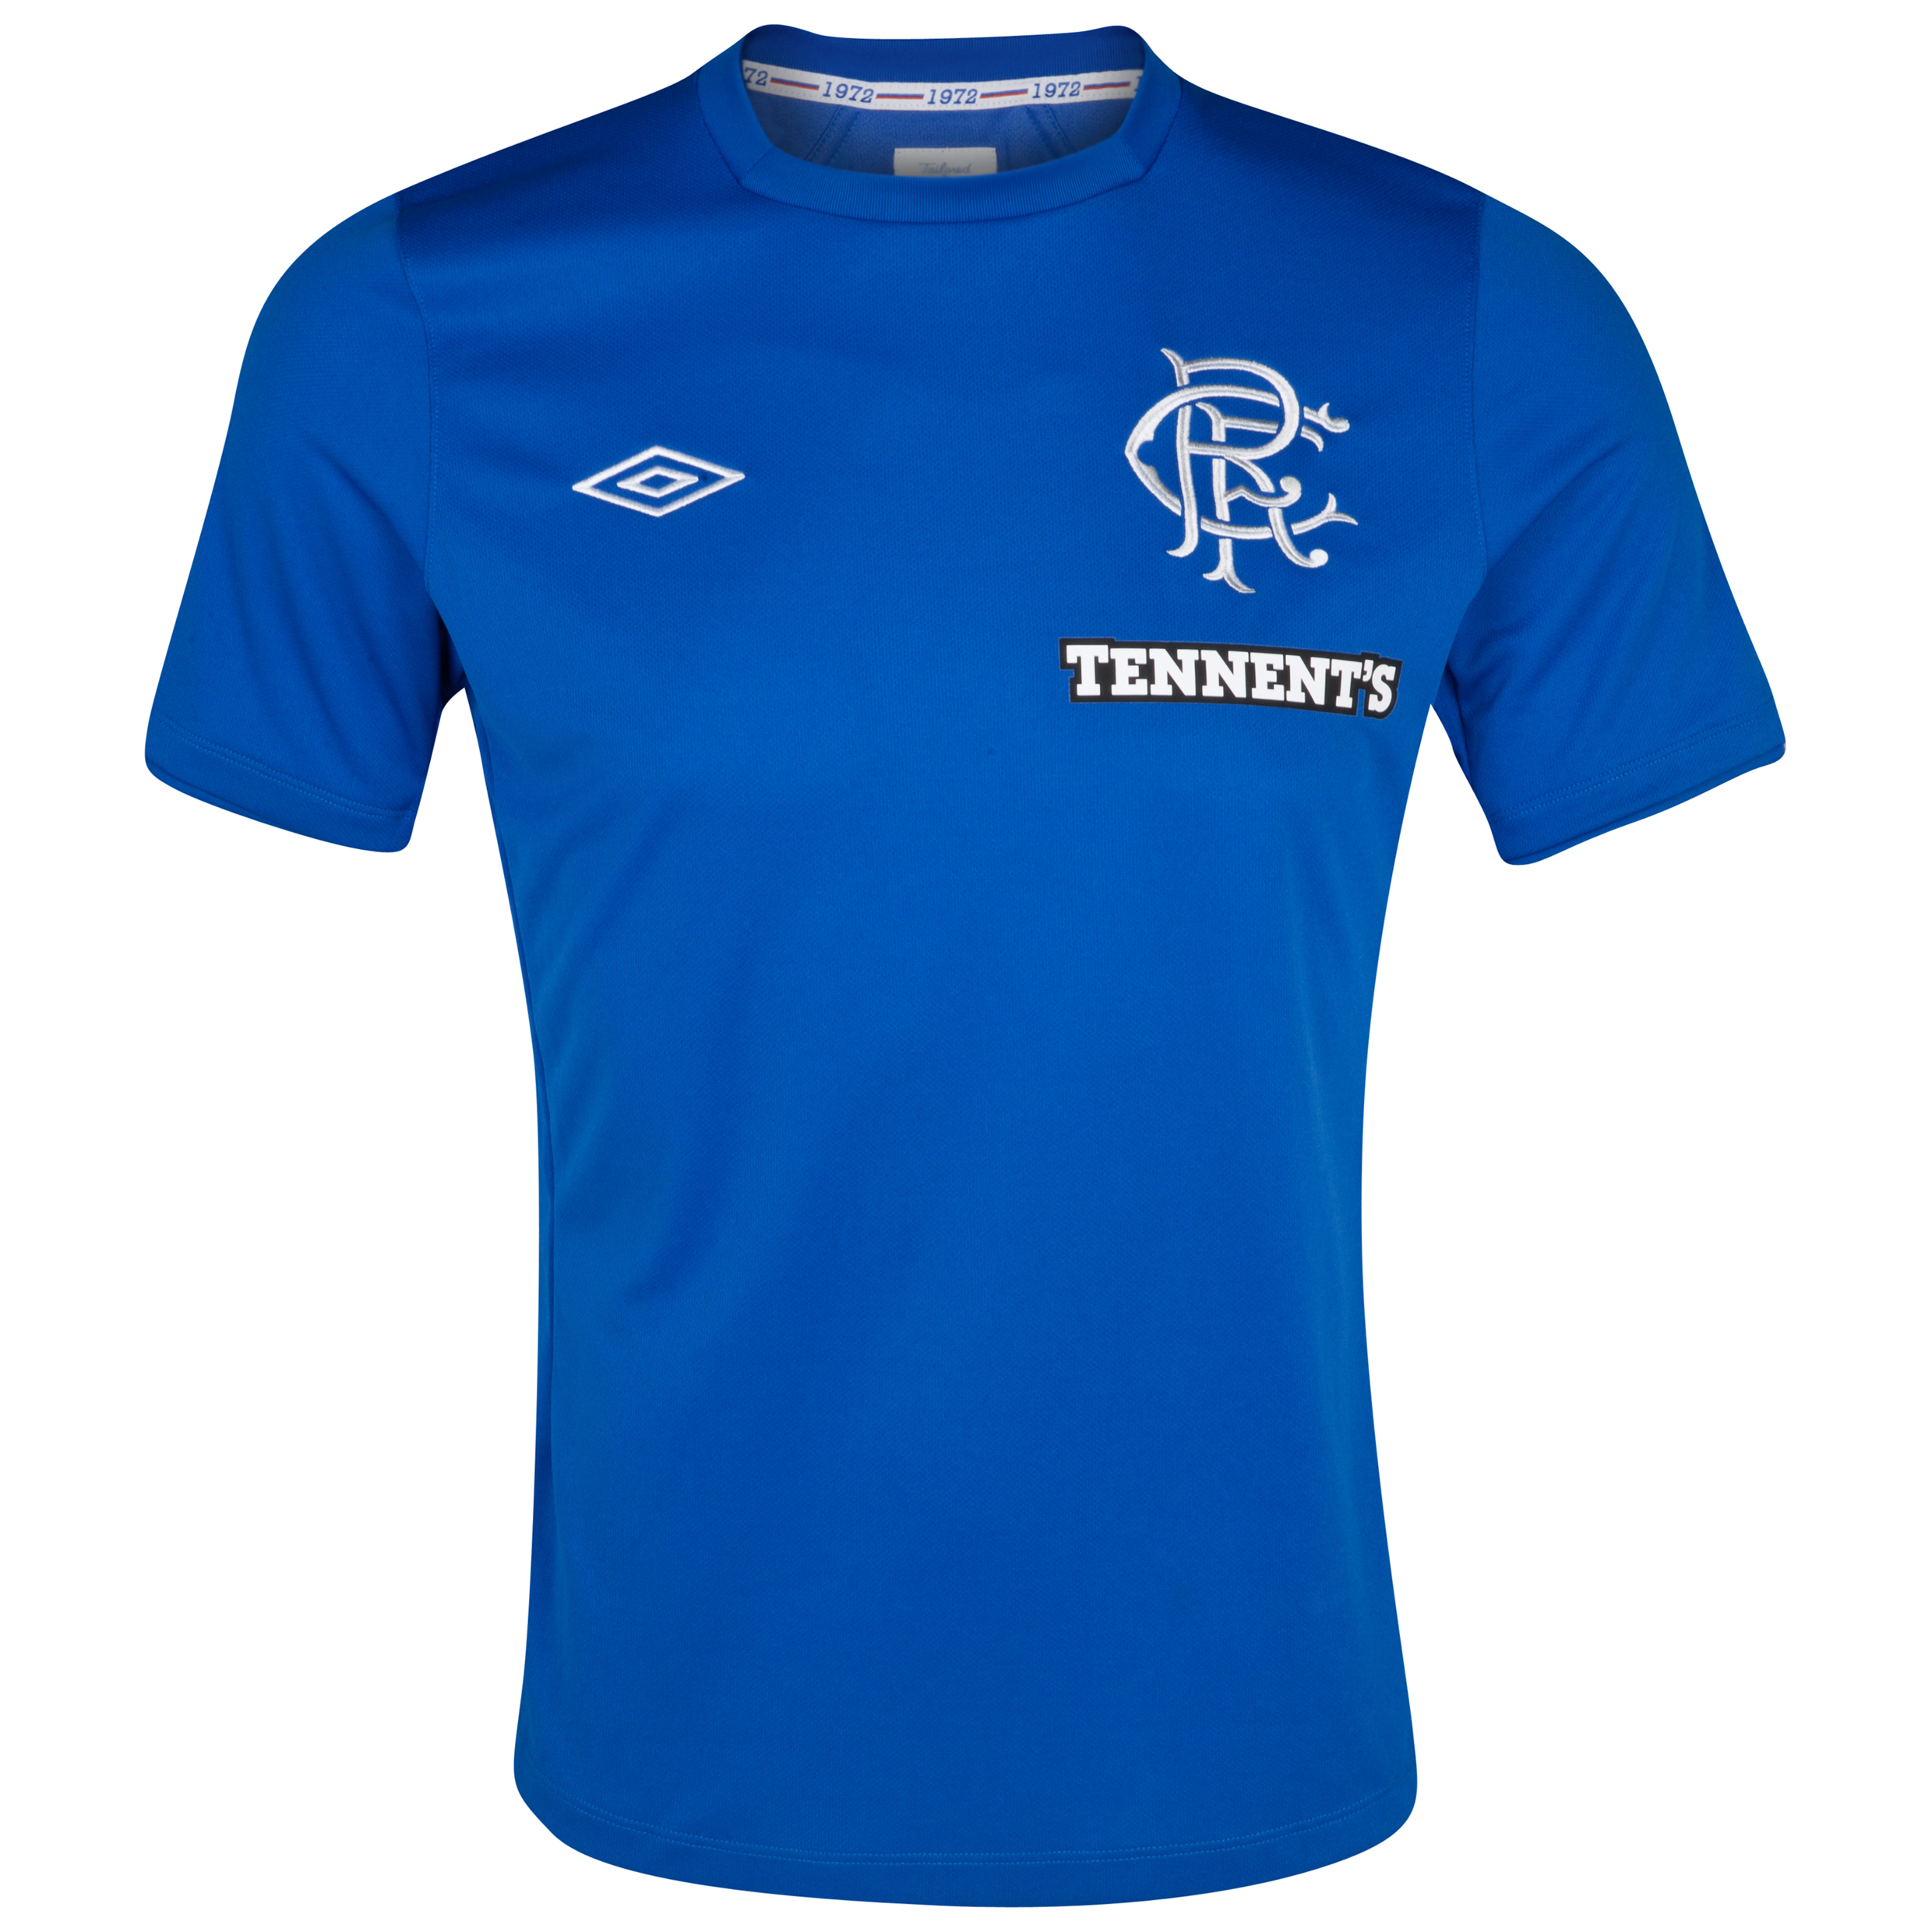 Glasgow Rangers Home Shirt 2012/13